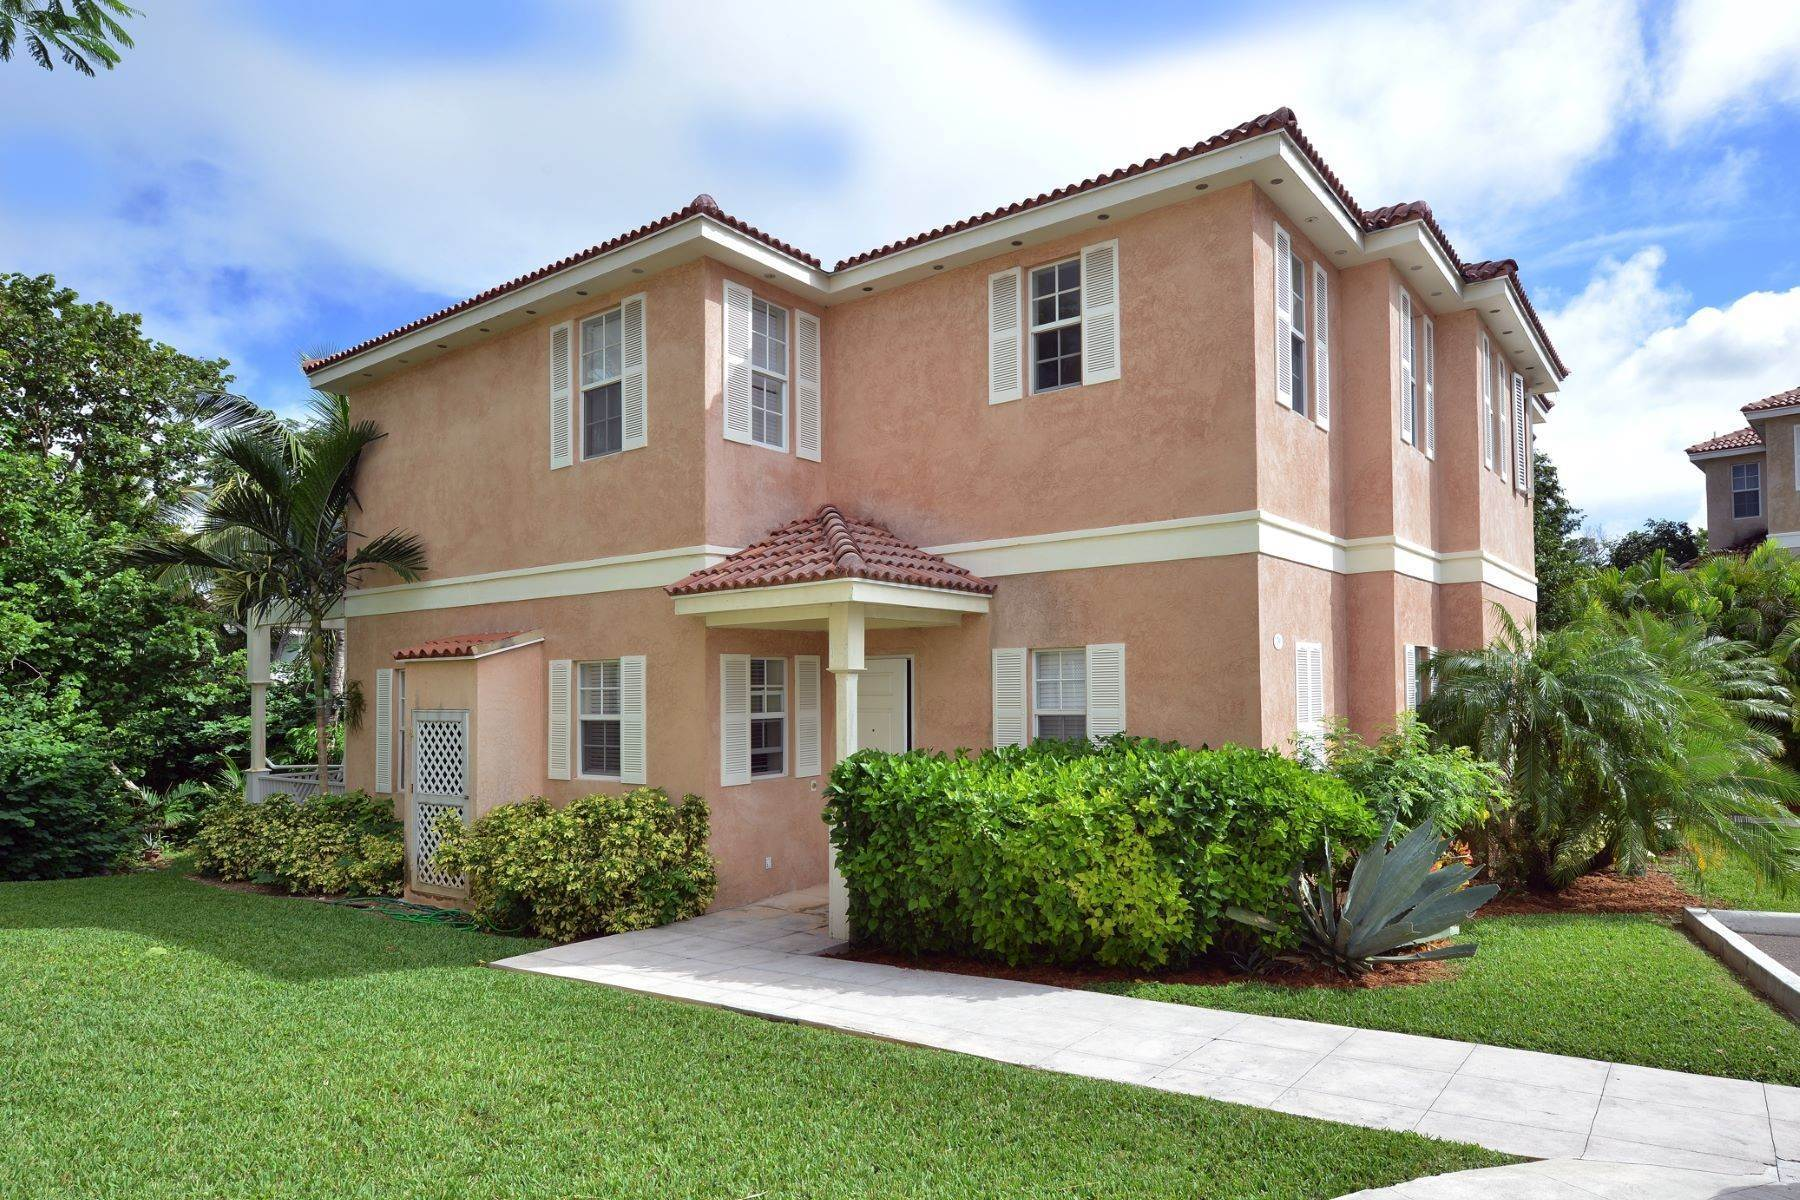 townhouses for Sale at Balmoral #GR79 Balmoral, Prospect Ridge, Nassau And Paradise Island Bahamas